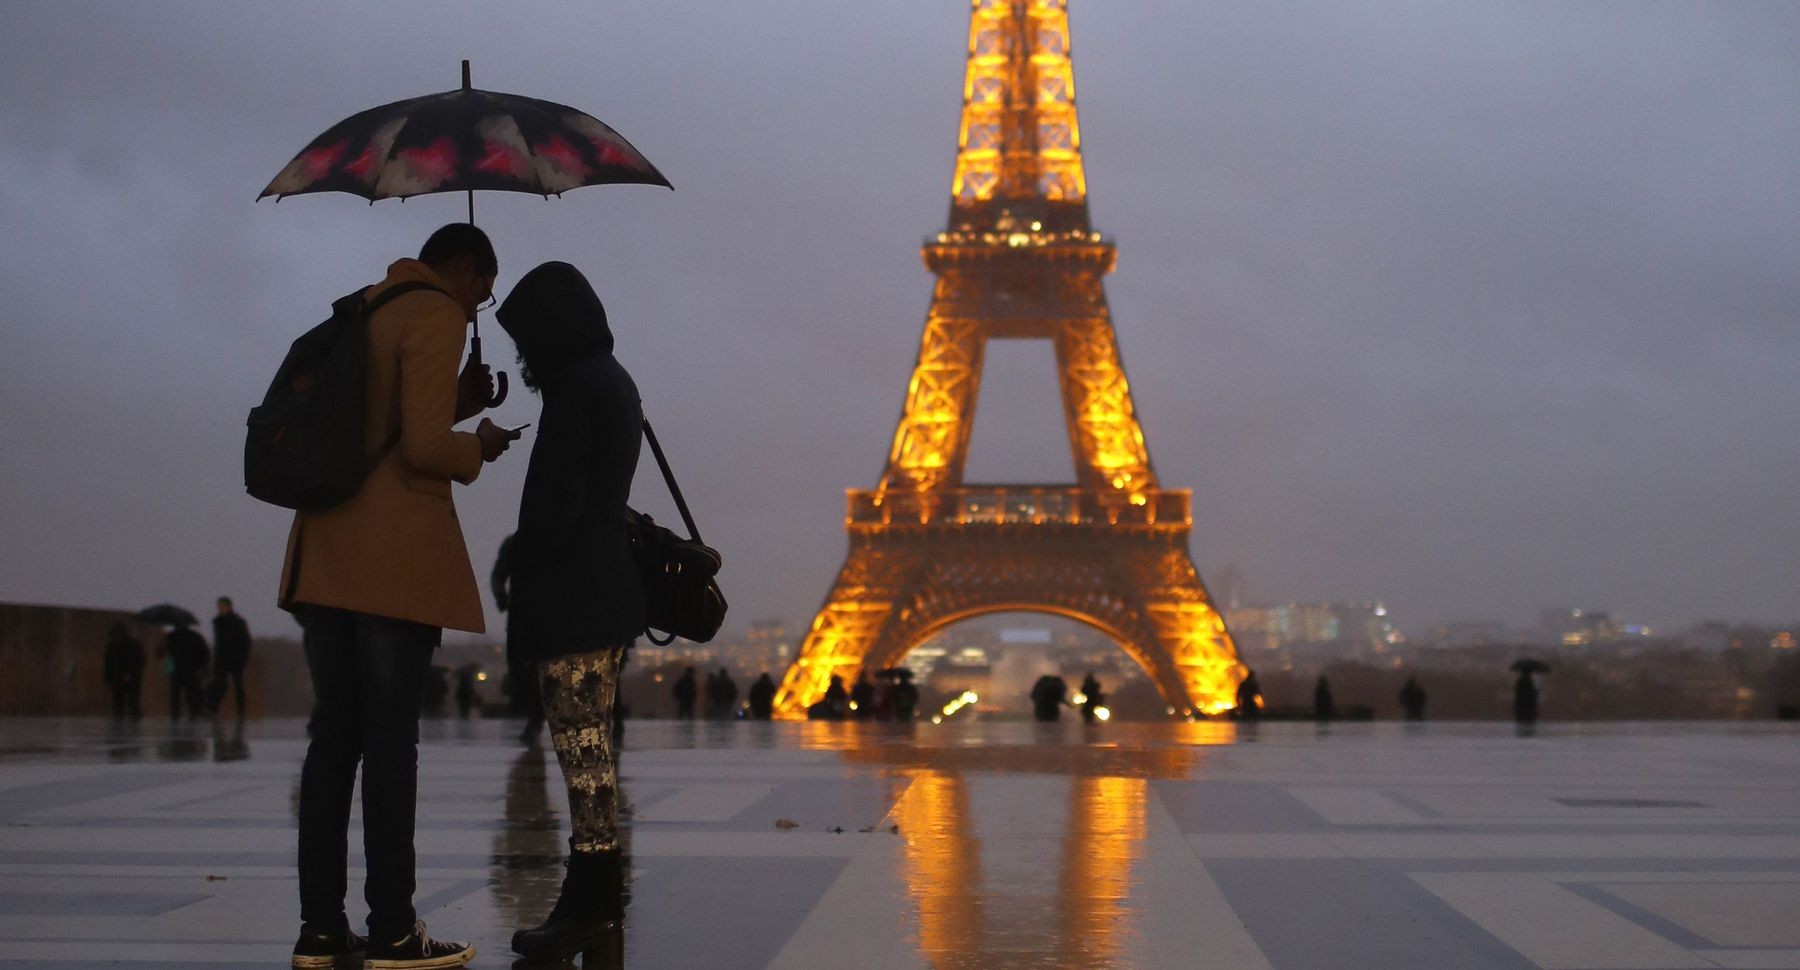 descriptive essay about the eiffel tower The history of the eiffel tower essay eiffeltower the eiffel tower is a famous landmark in paris it was built between 1887 and 1889 as the entrance arch for a fair called the exposition universelle it cost £35million to build.